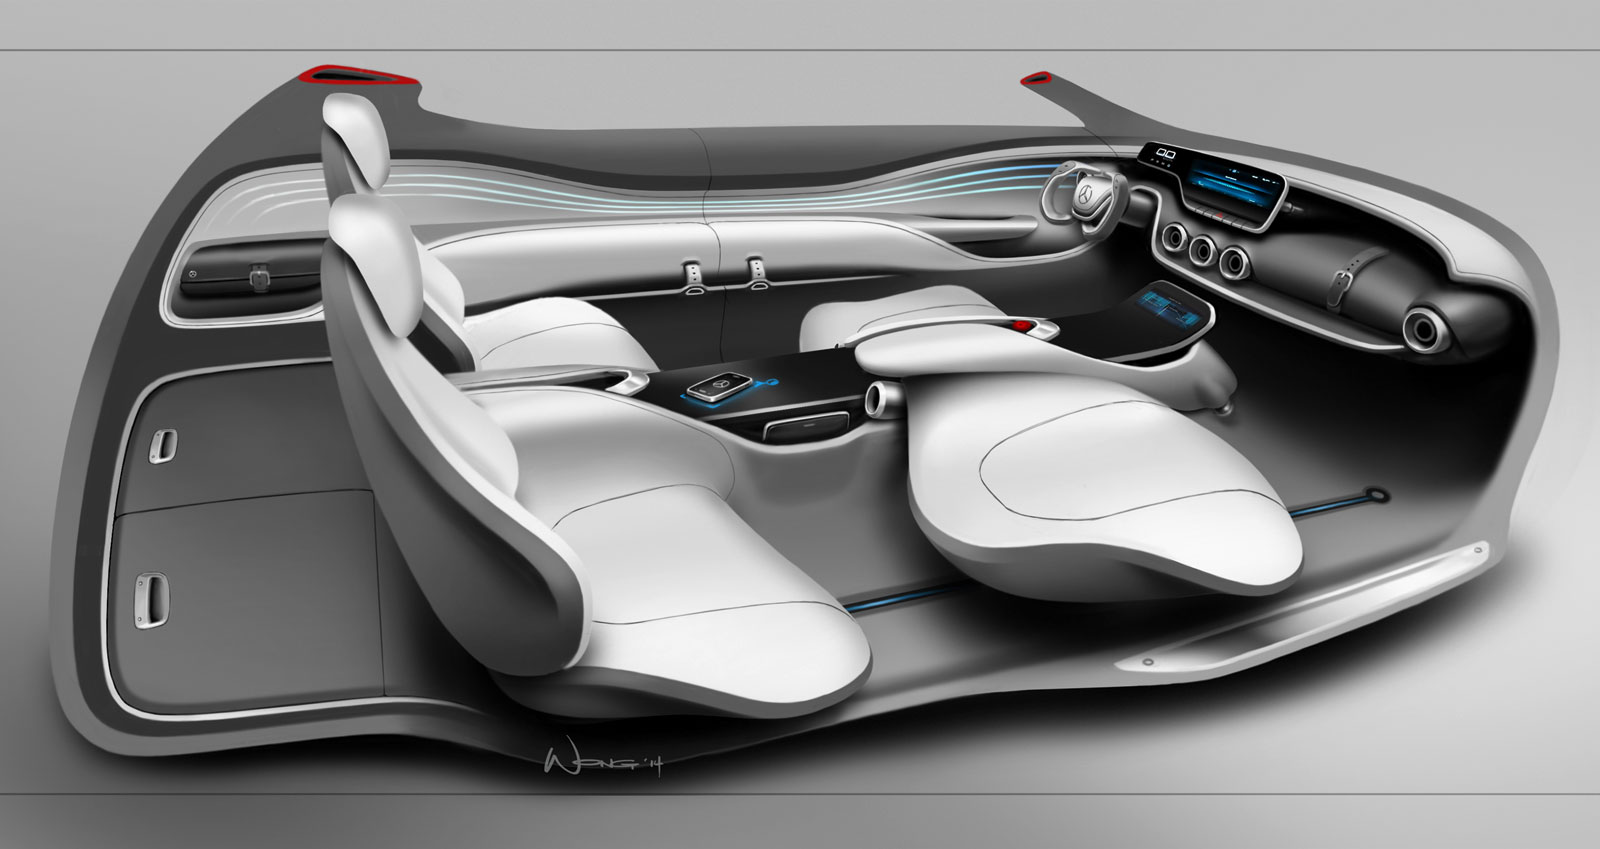 Mercedes benz vision g code concept interior design - Car interior design ...